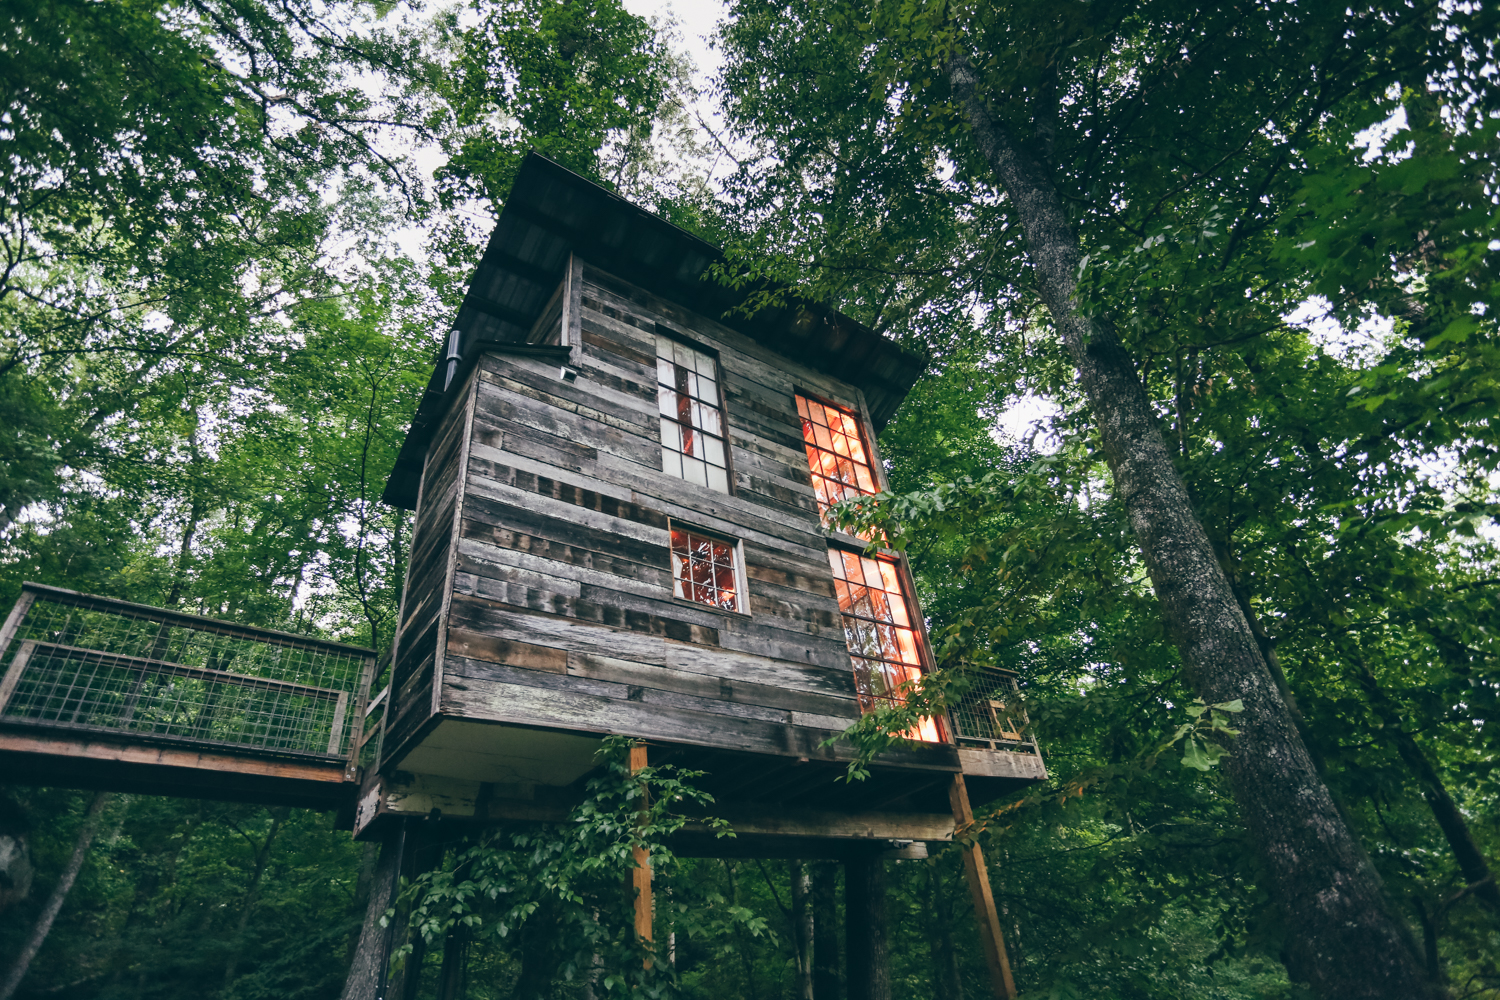 KK_chattanooga treehouse-5875.jpg